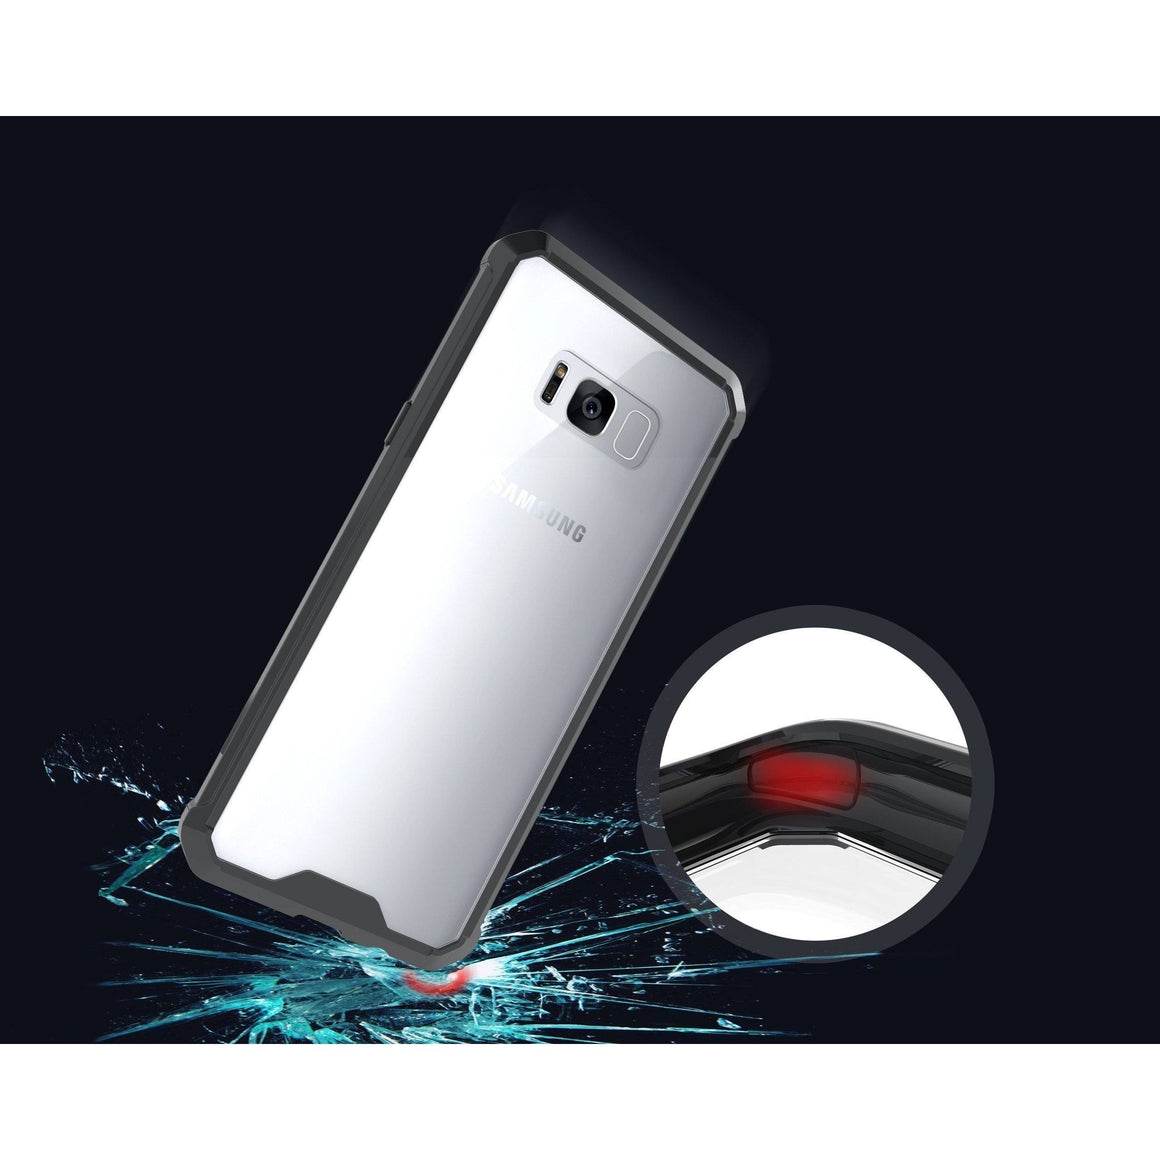 Shock Absorption Case for Samsung Galaxy S8 Plus - Air Hybrid Armor Defender Protective Case - MoArmouz